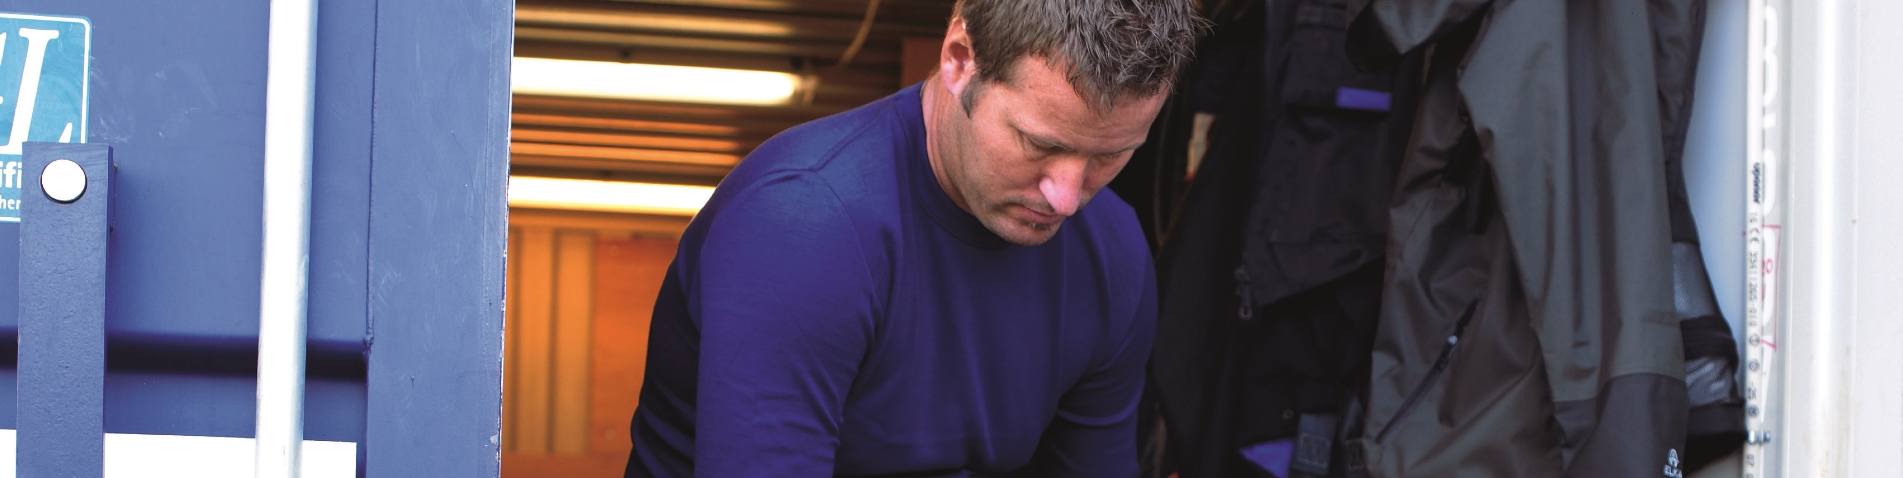 workwear4all-be -  Thermo shirts